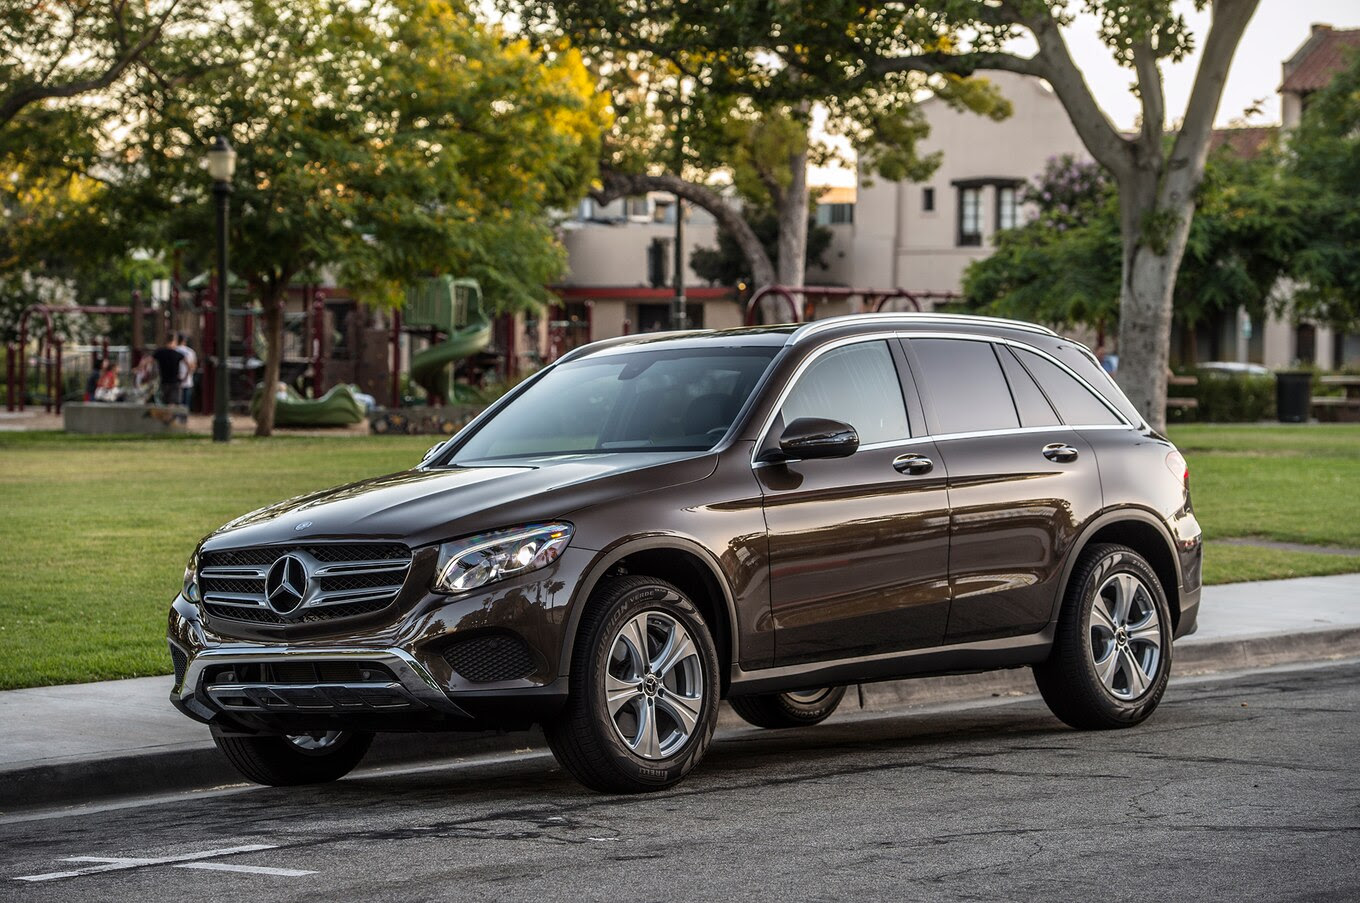 2017 Mercedes-Benz GLC300 4Matic Review - Long-Term Update 1